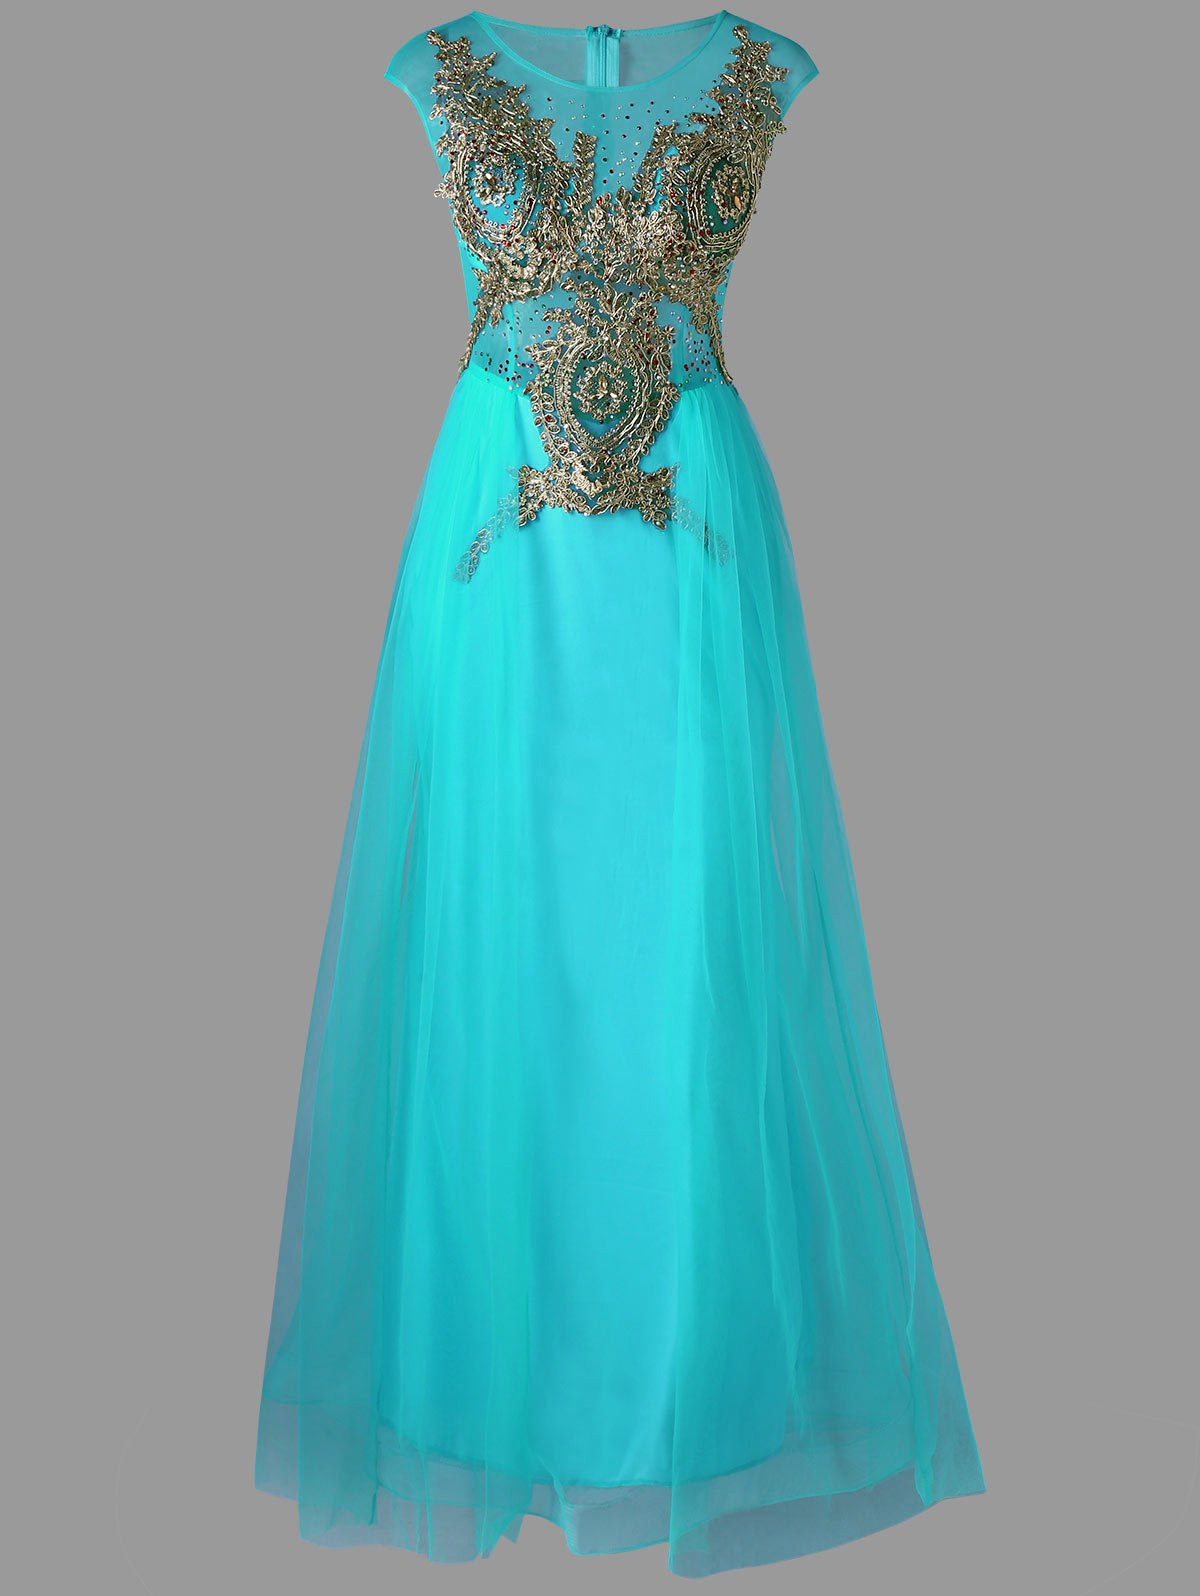 A Line Sleeveless Maxi Tull Carpet Rhinestone DressWOMEN<br><br>Size: M; Color: CYAN; Style: Elegant; Material: Polyester; Silhouette: A-Line; Dresses Length: Floor-Length; Neckline: Round Collar; Sleeve Length: Sleeveless; Pattern Type: Floral; With Belt: No; Season: Fall,Spring,Summer; Weight: 0.3500kg; Package Contents: 1 x Dress;